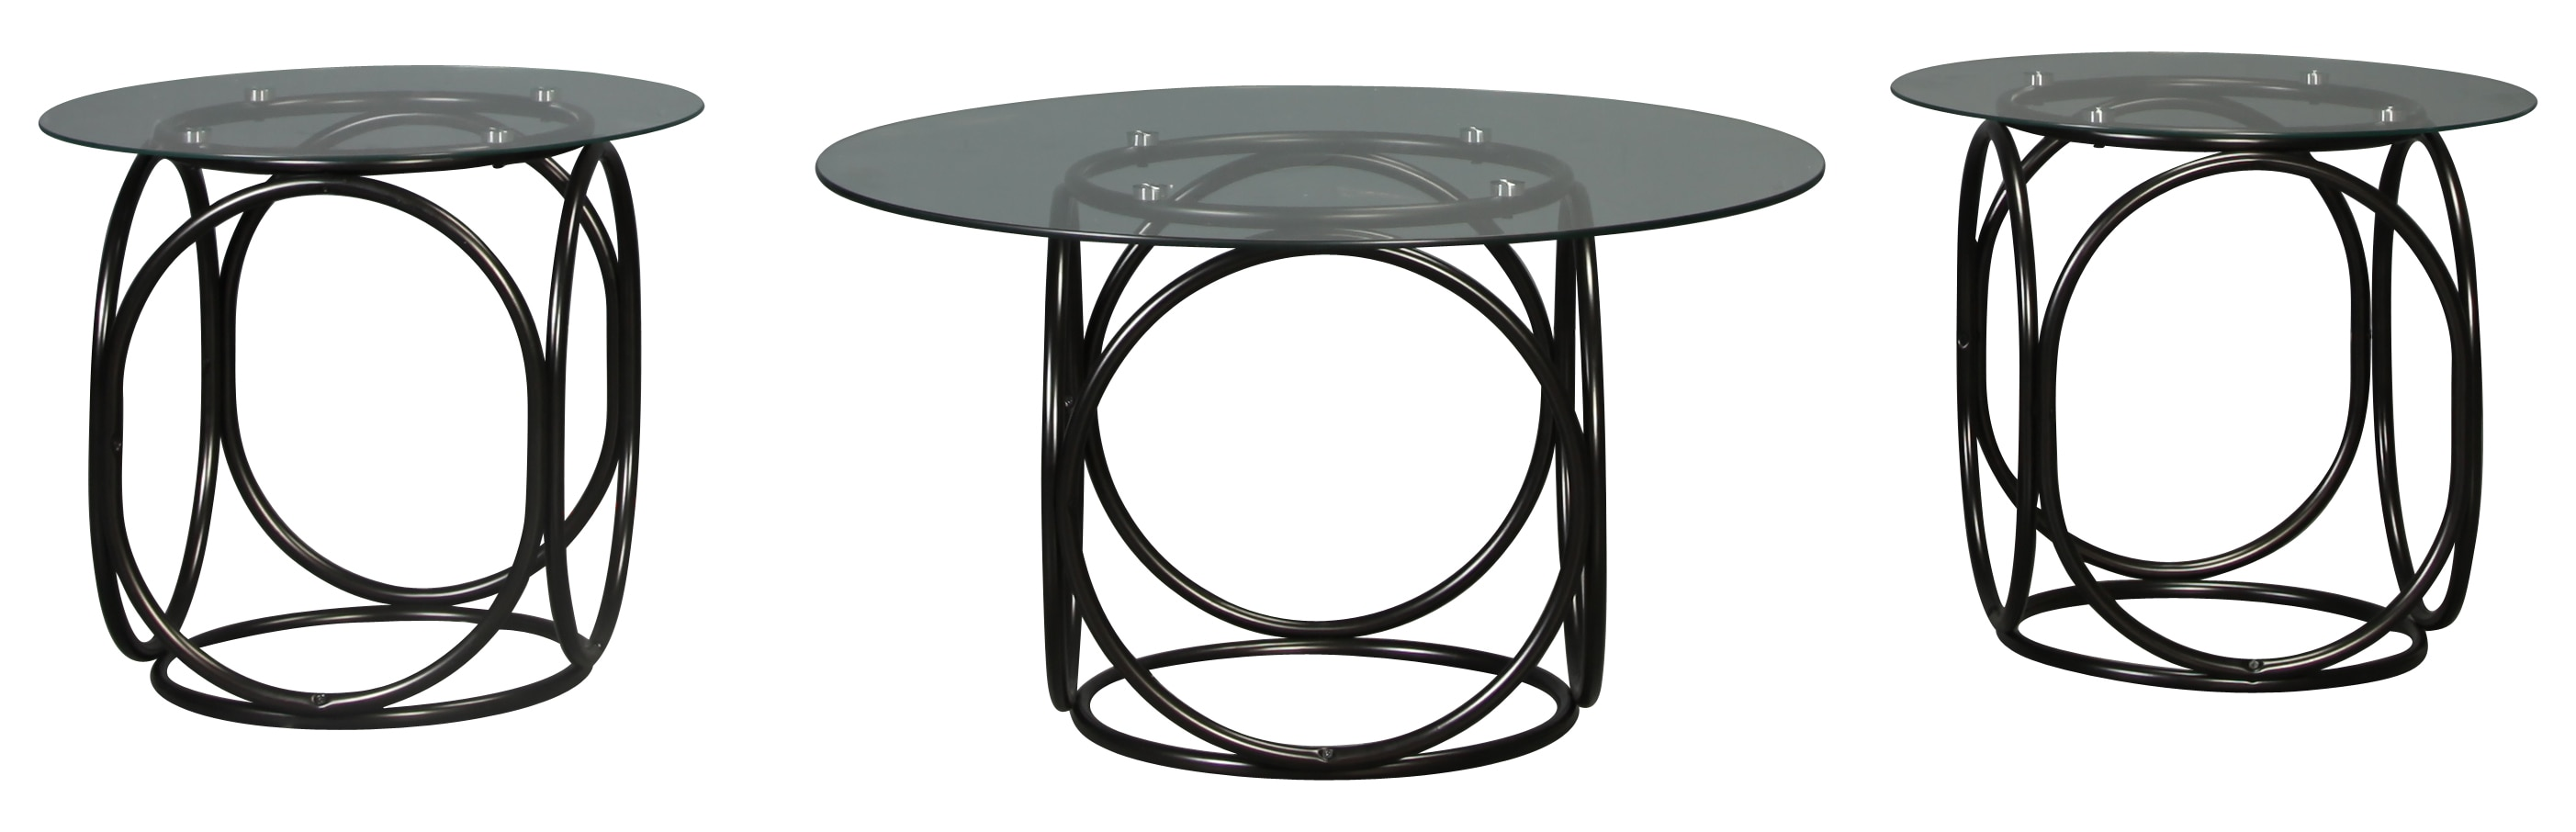 Leland 3 Pack of Tables